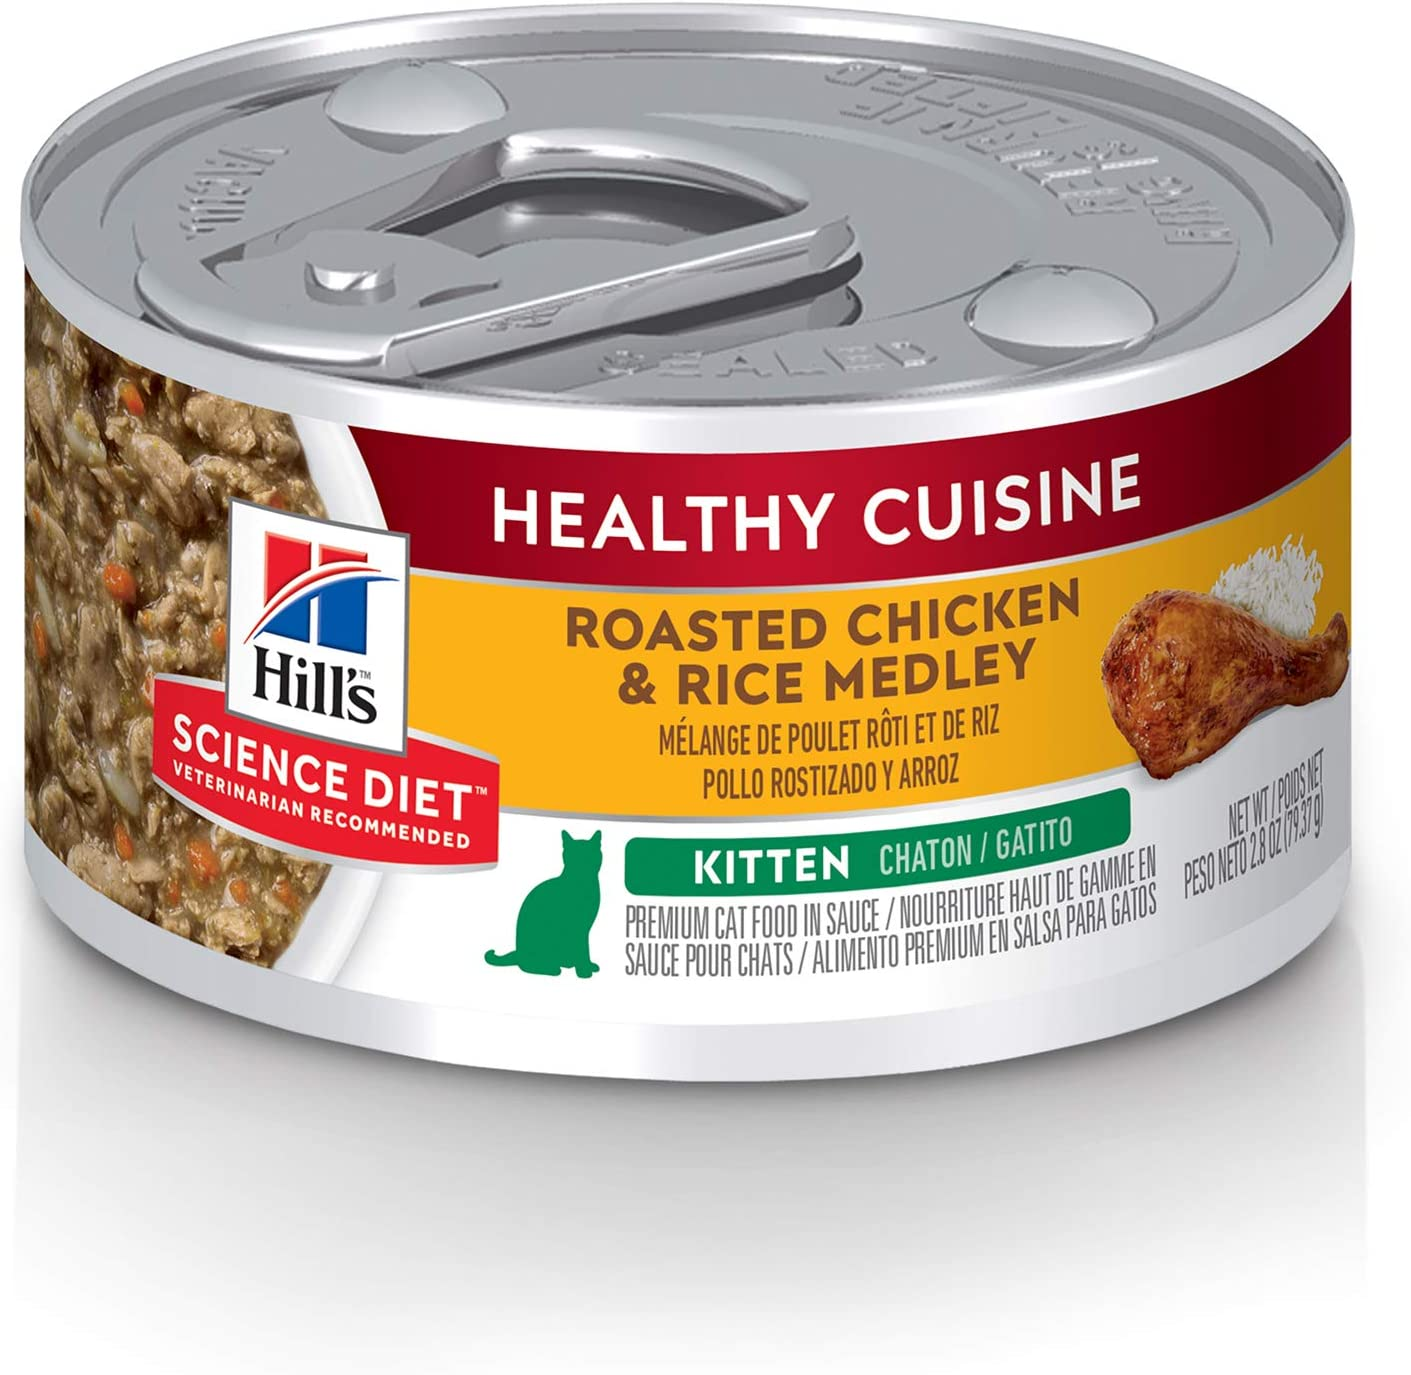 Hill's Science Diet Wet Cat Food, Kitten, Healthy Cuisine, Roasted Chicken & Rice Recipe, 2.8 oz Cans, 24-pack